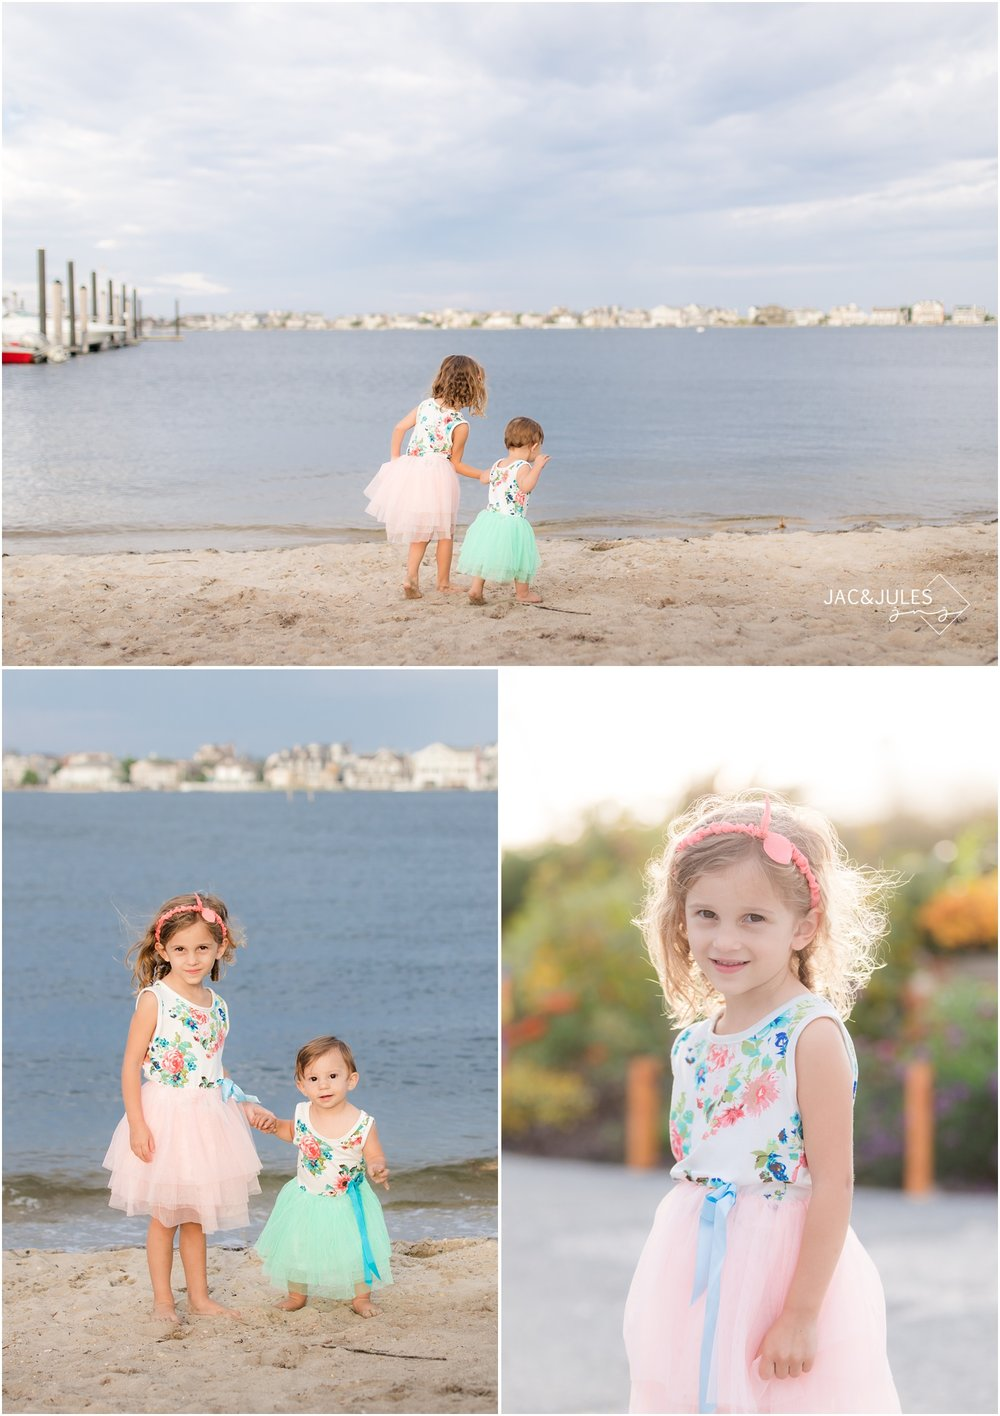 photo of sisters by the bay in Mantoloking, NJ.